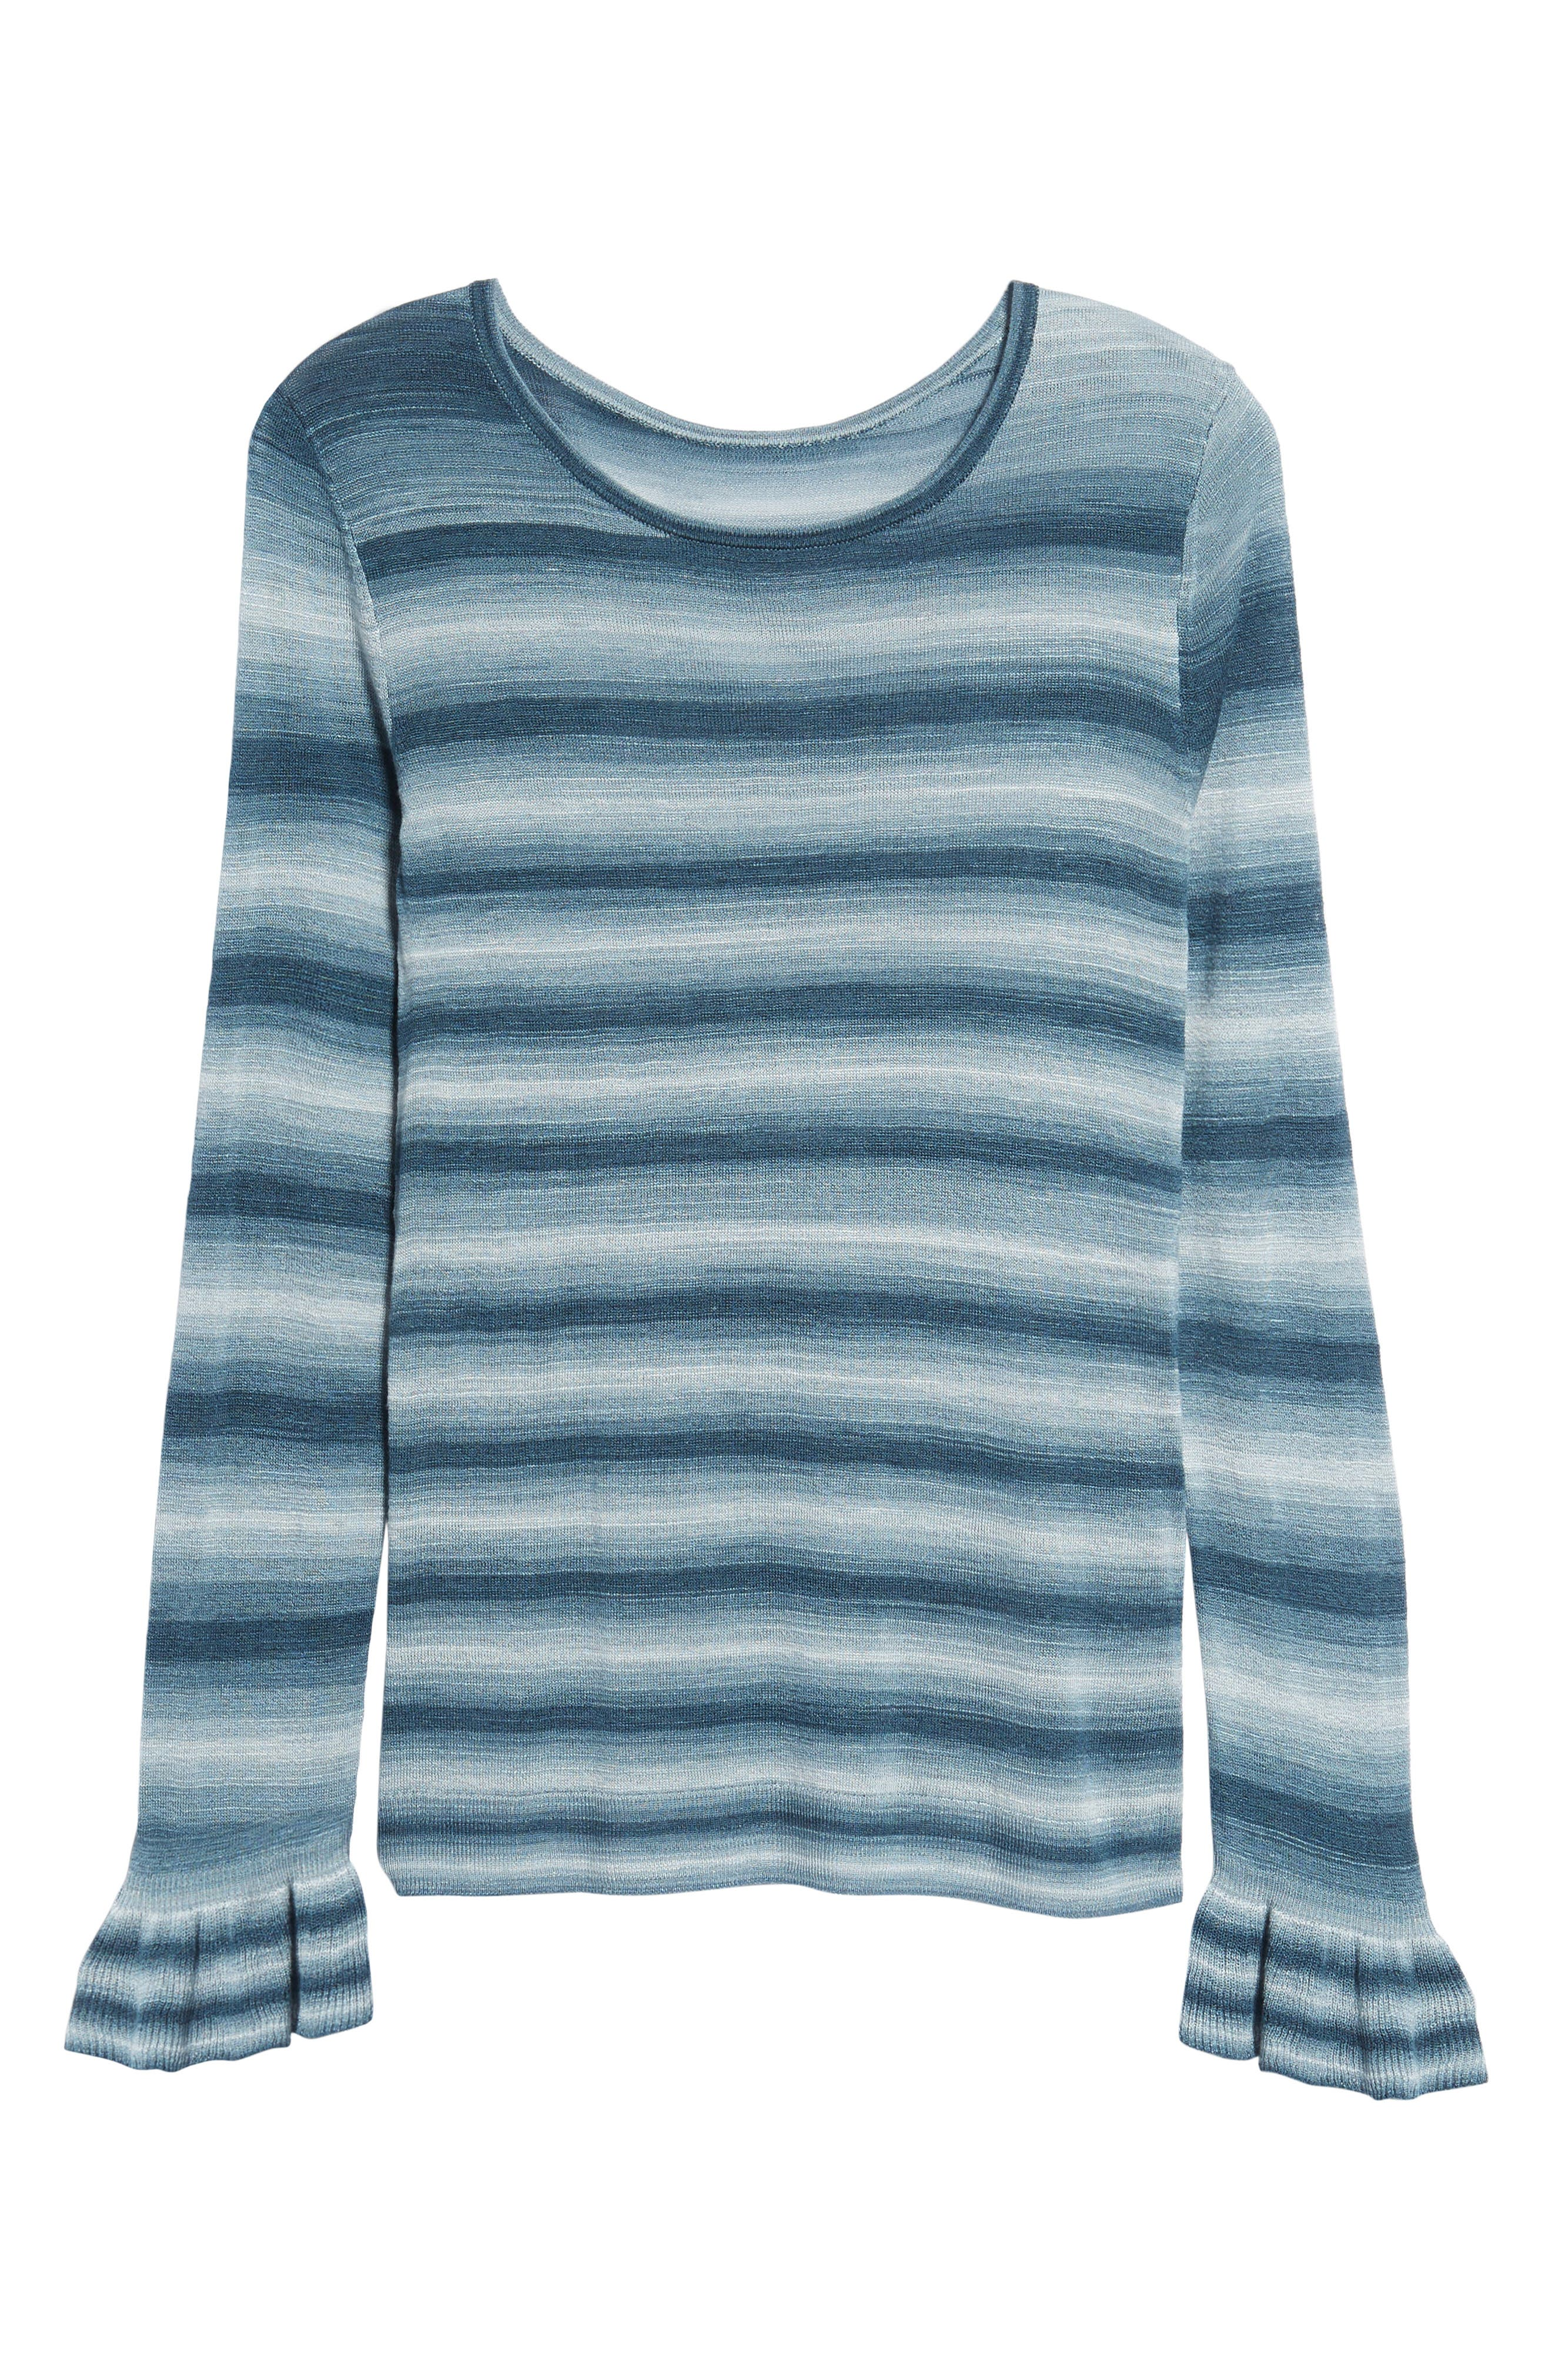 Gradient Stripe Sweater,                             Alternate thumbnail 6, color,                             Teal Abyss Combo